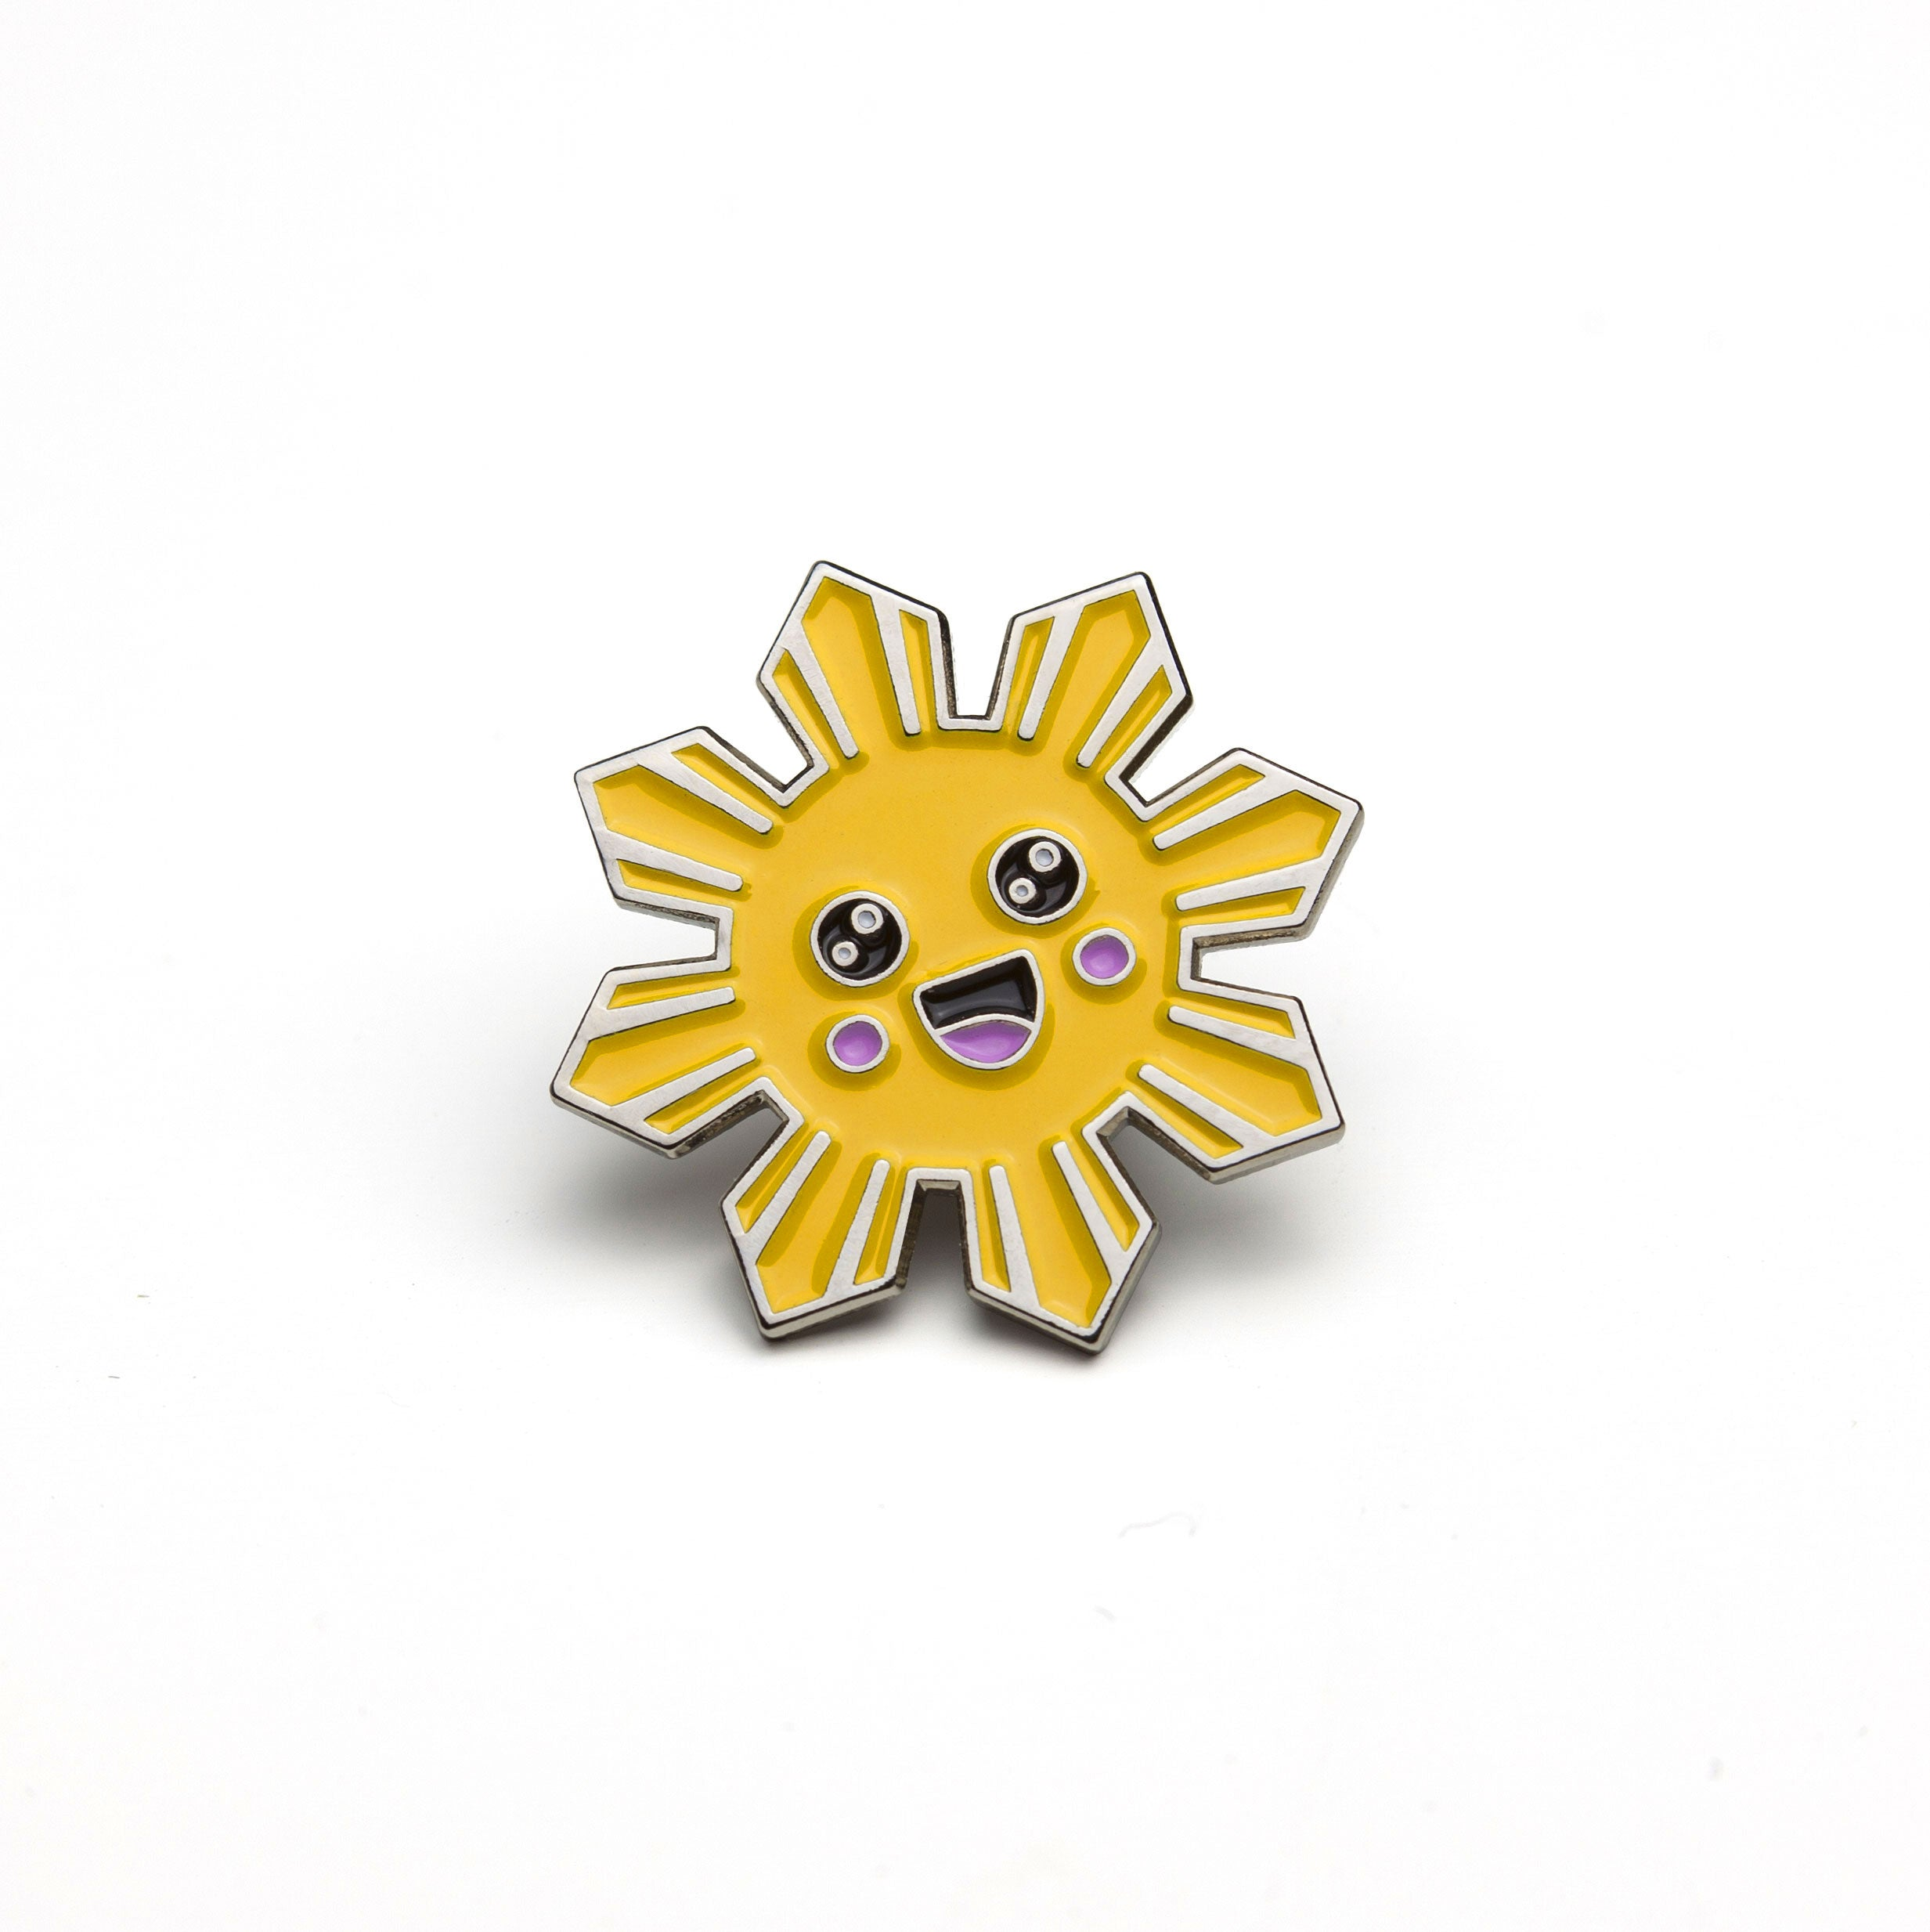 illa manila enamel pin philippine sun flag kawaii